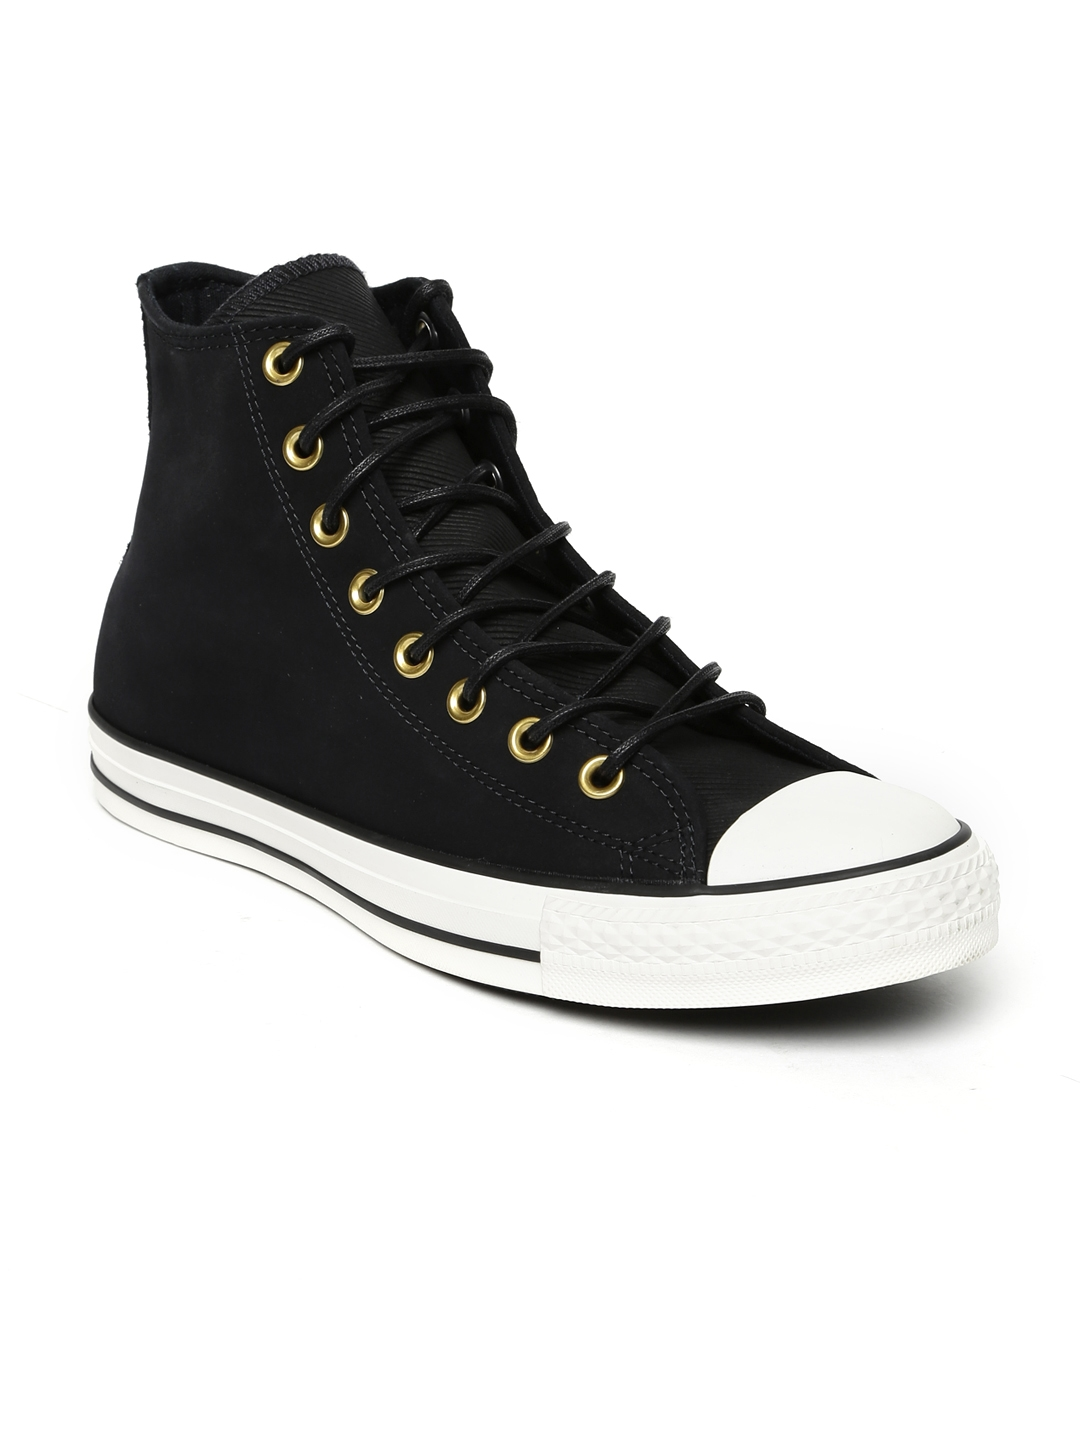 converse shoes all white. converse men black solid high tops sneakers shoes all white